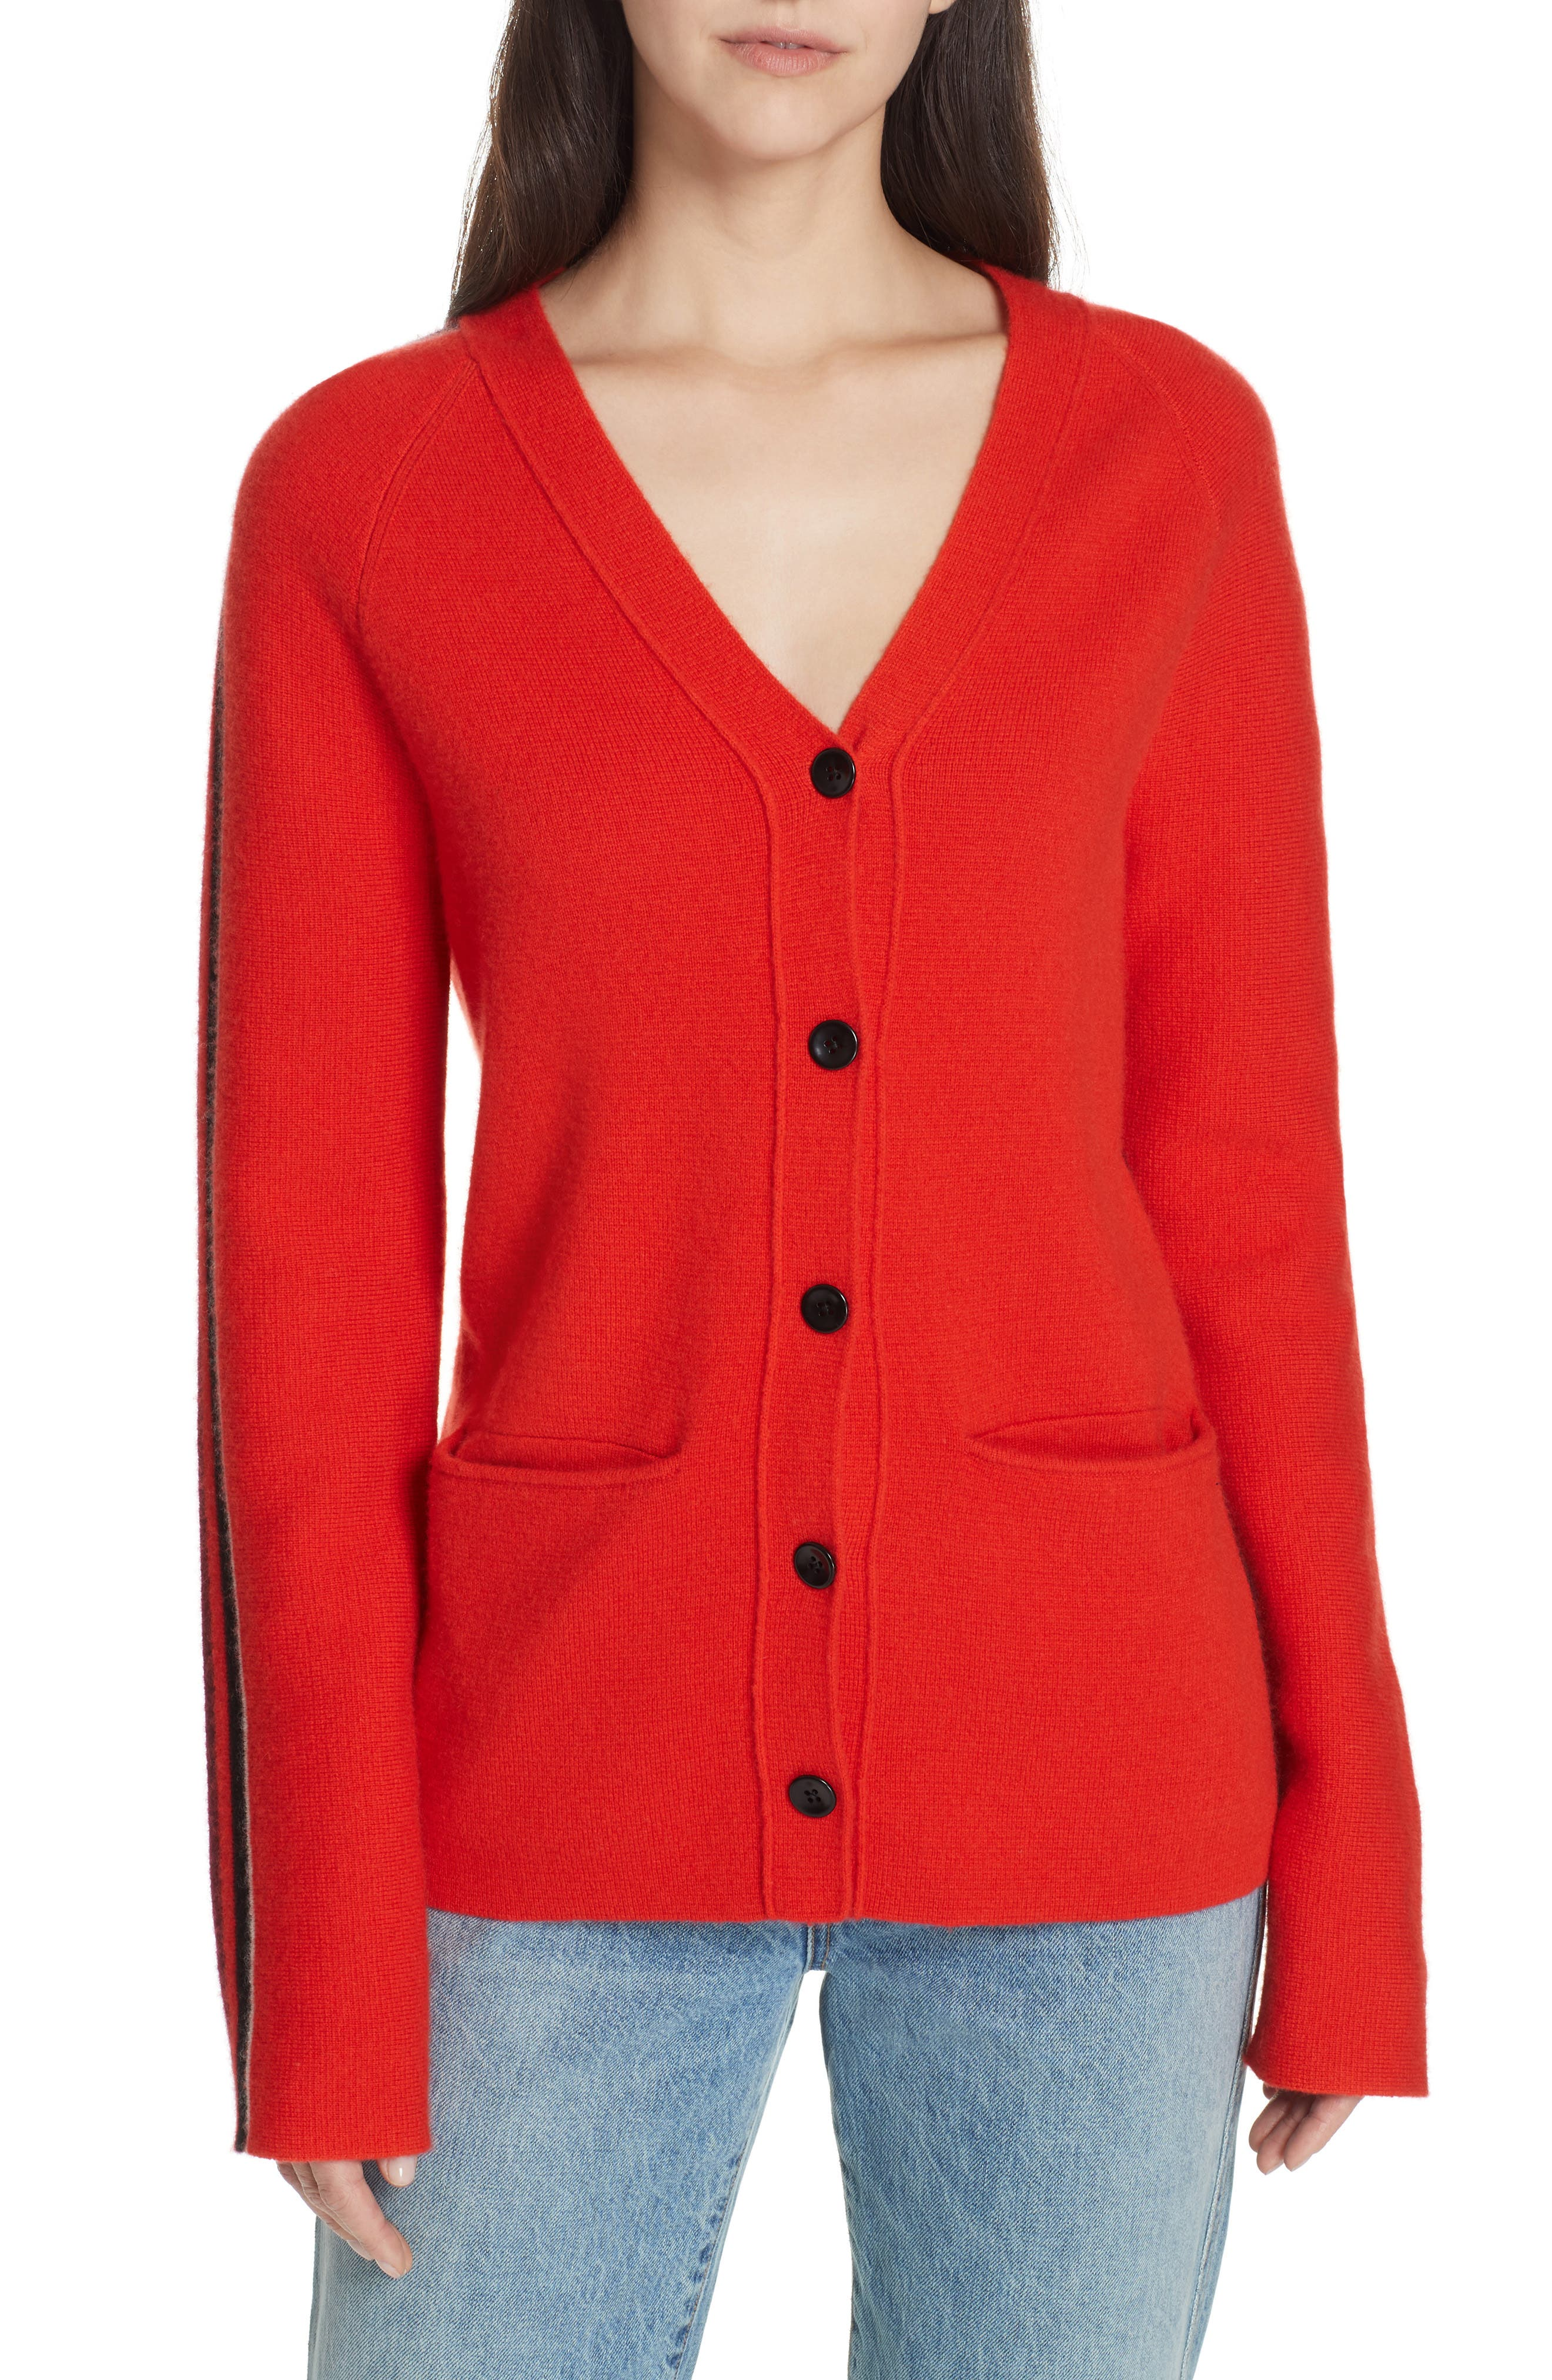 PSWL Stripe Sleeve Merino Wool & Cashmere Cardigan,                             Main thumbnail 1, color,                             RED COMBO